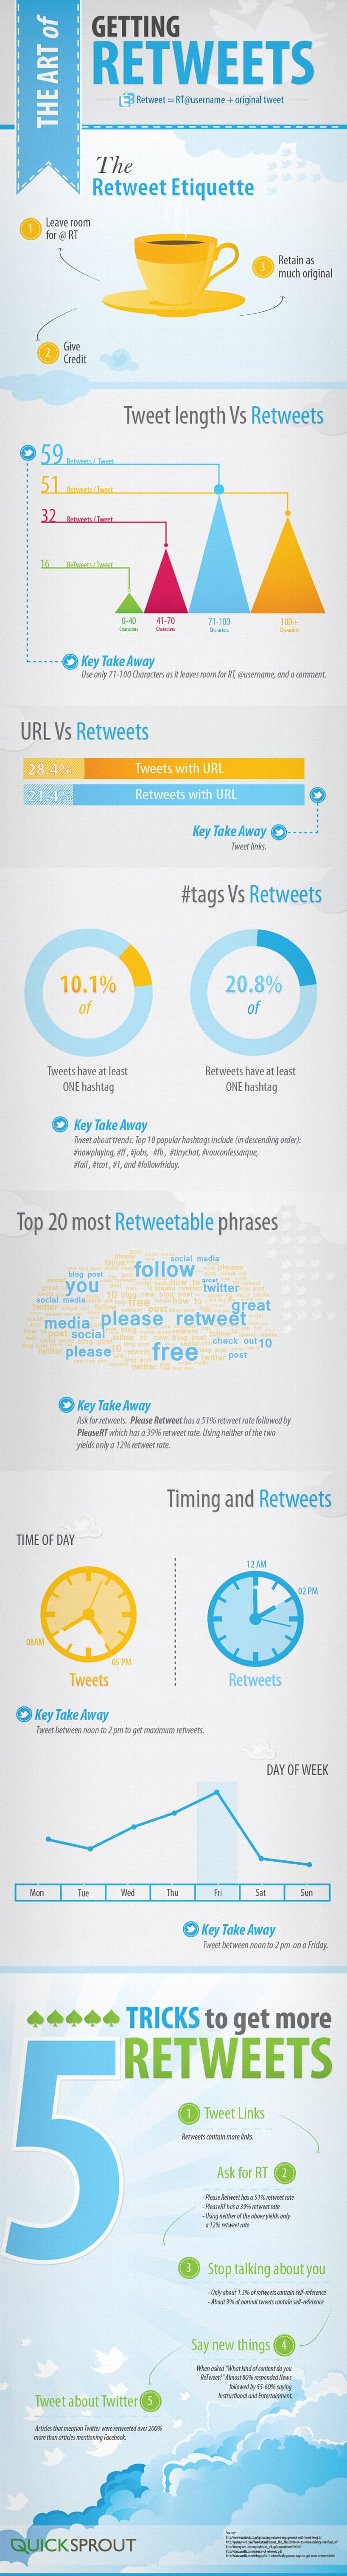 Twitter Etiquette Guide To Increase Your Retweets [Infographic]